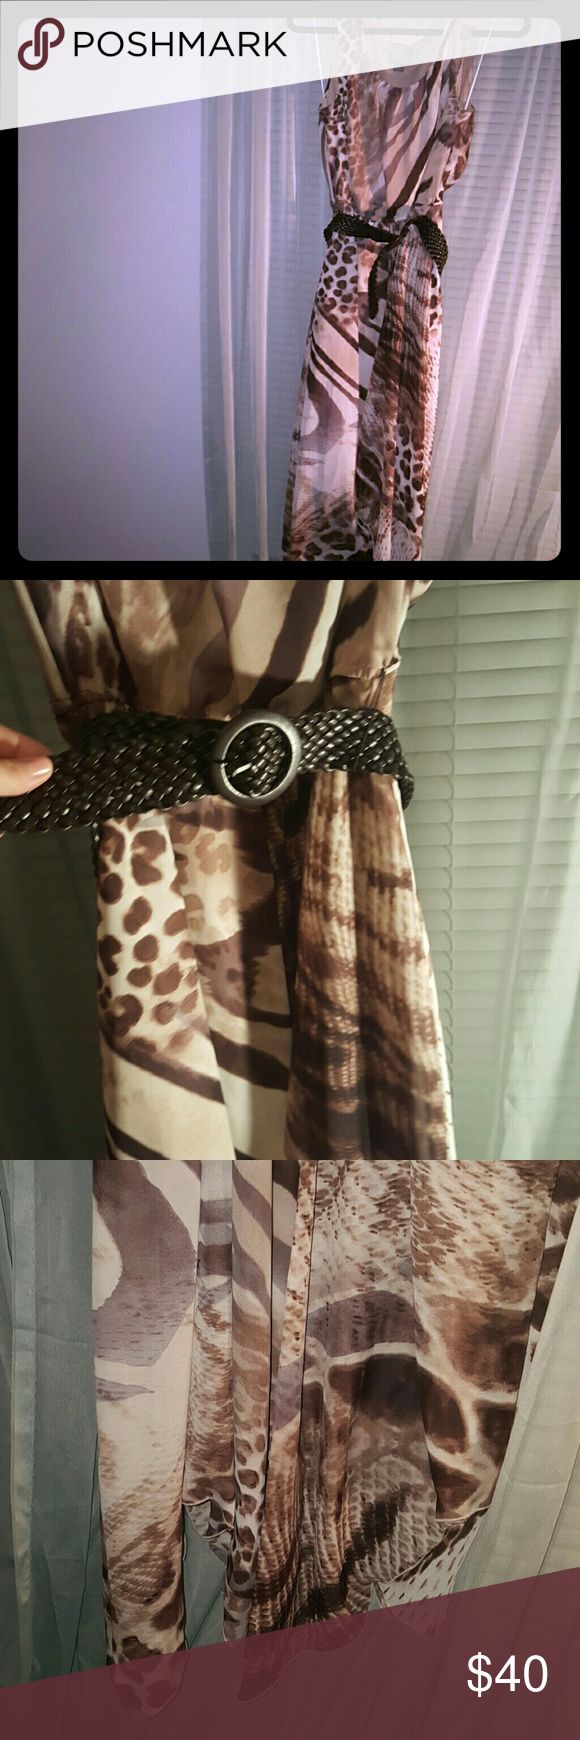 Scoop neck animal print long dress with belt Bottom is mix of high and low there is a tan underlay light weight and so cute match with brown sweater for fall look Rabbit Rabbit Rabbit Dresses High Low